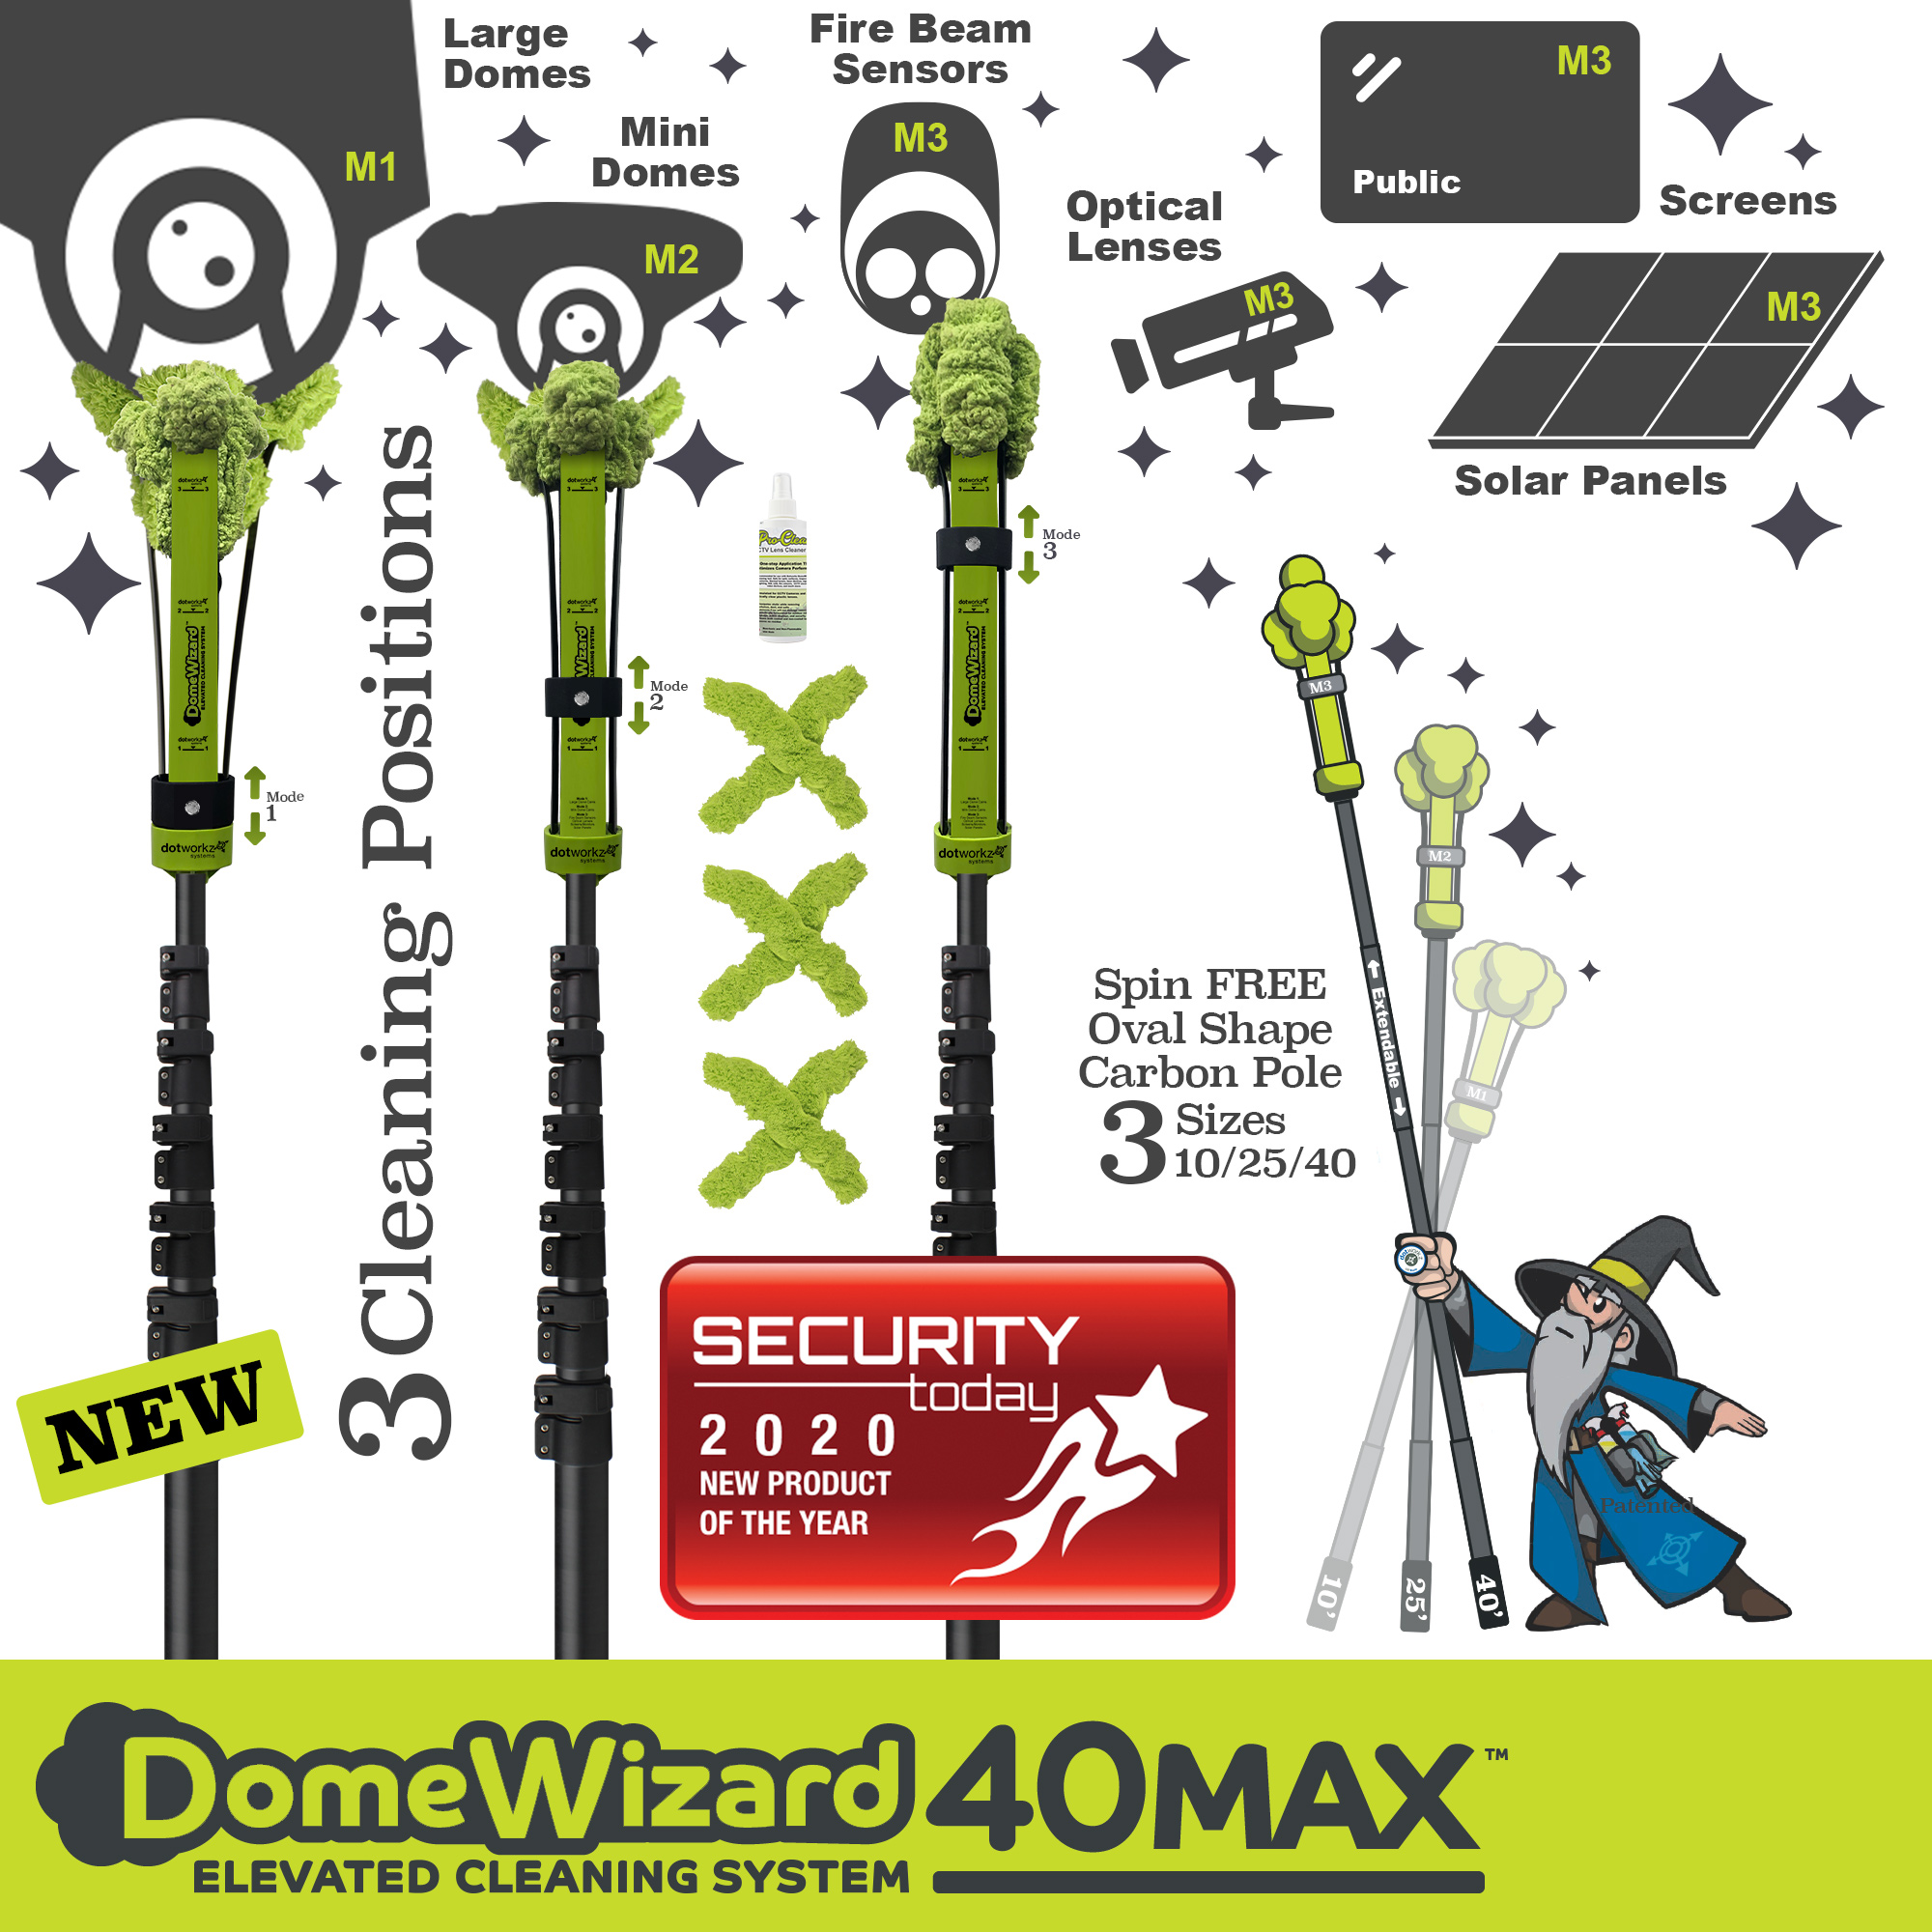 DomeWizard 40Max – Elevated Cleaning System (DW-40MAX) with 3 Cleaning Modes